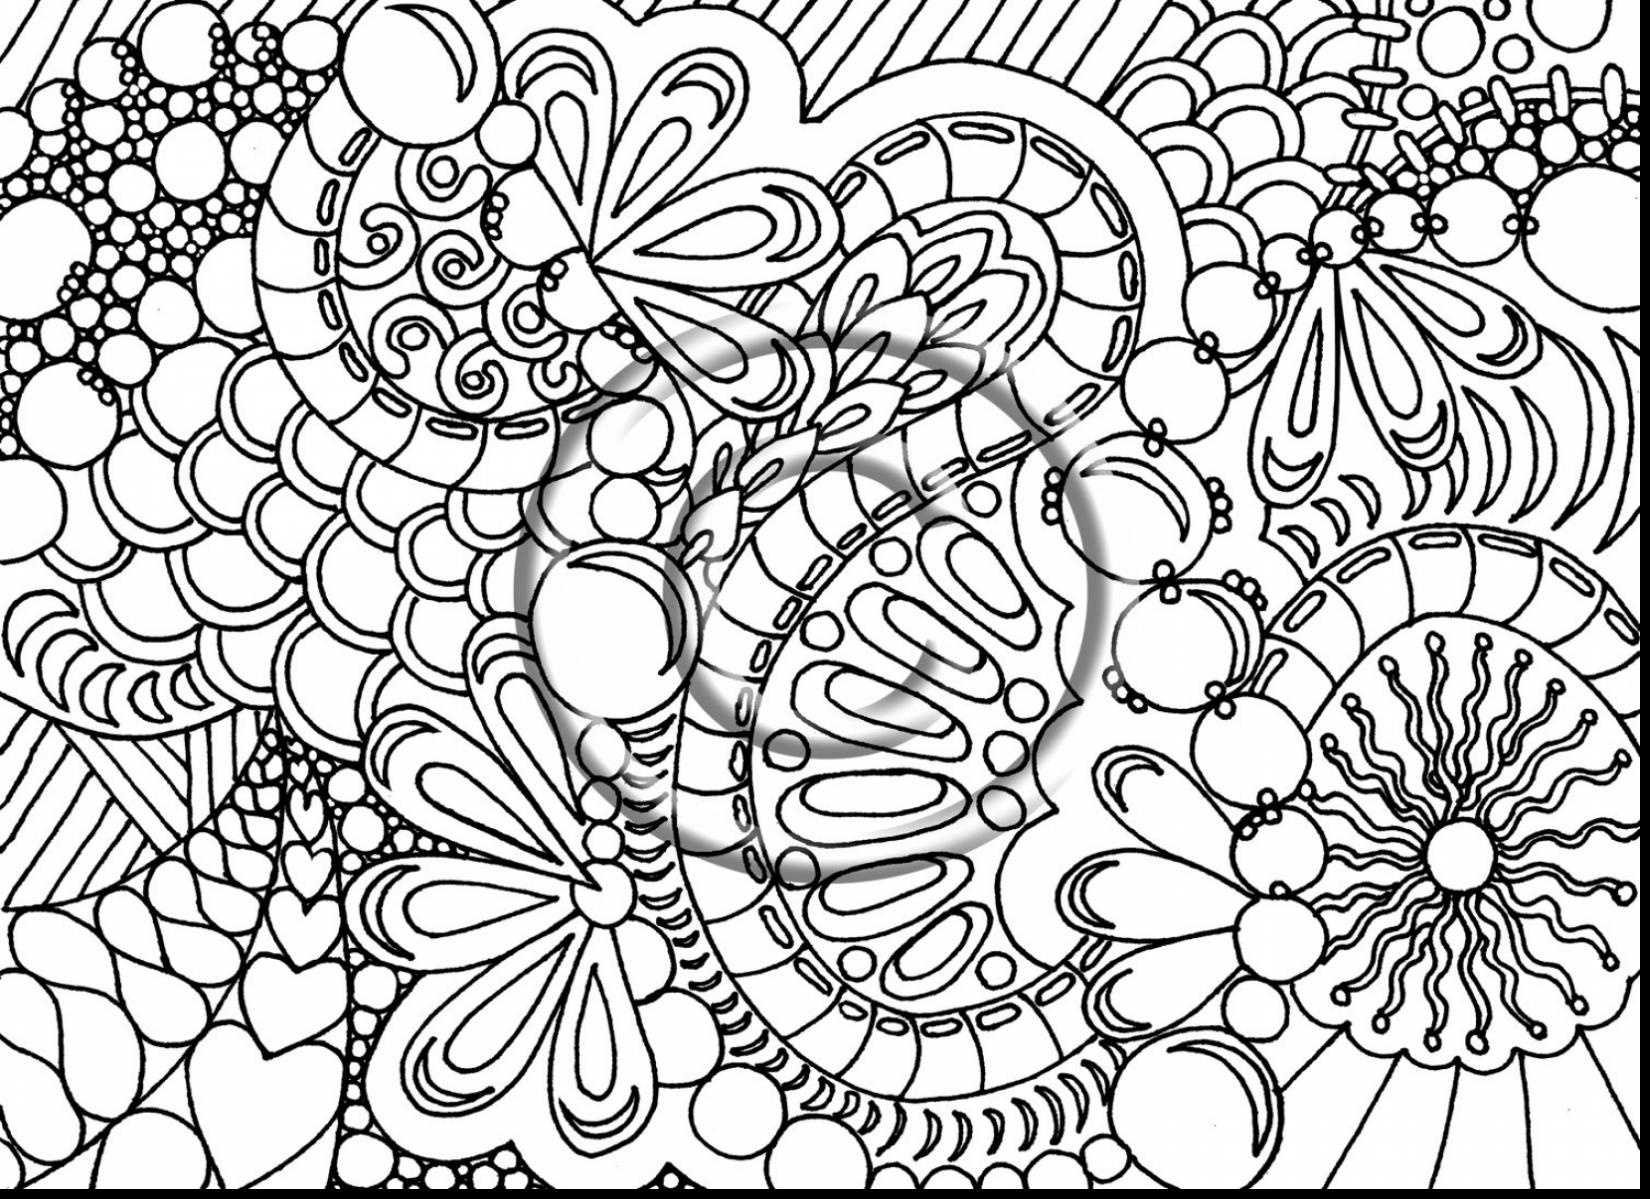 Coloring ~ Coloring Free Printable Pages For Adults Pdf Ideas Pagers - Free Printable Coloring Pages For Adults Pdf